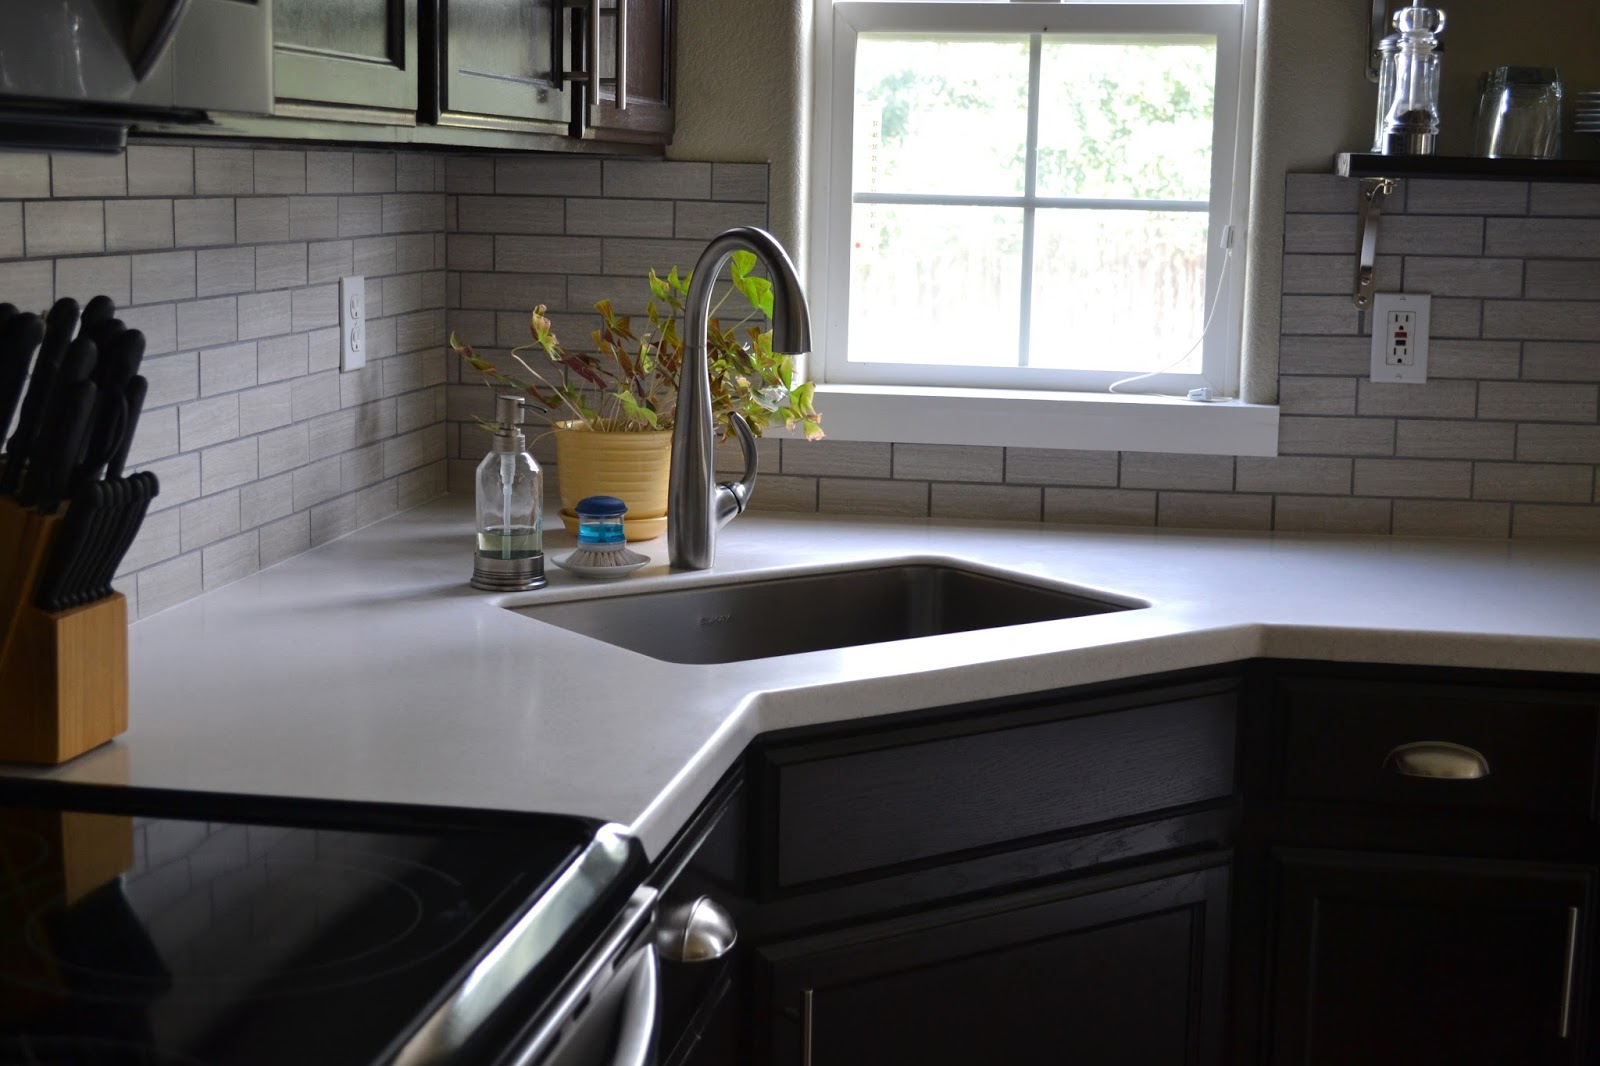 Superieur Magenta And Lime: Solid Surface Countertop Review: 6 Months. U003e